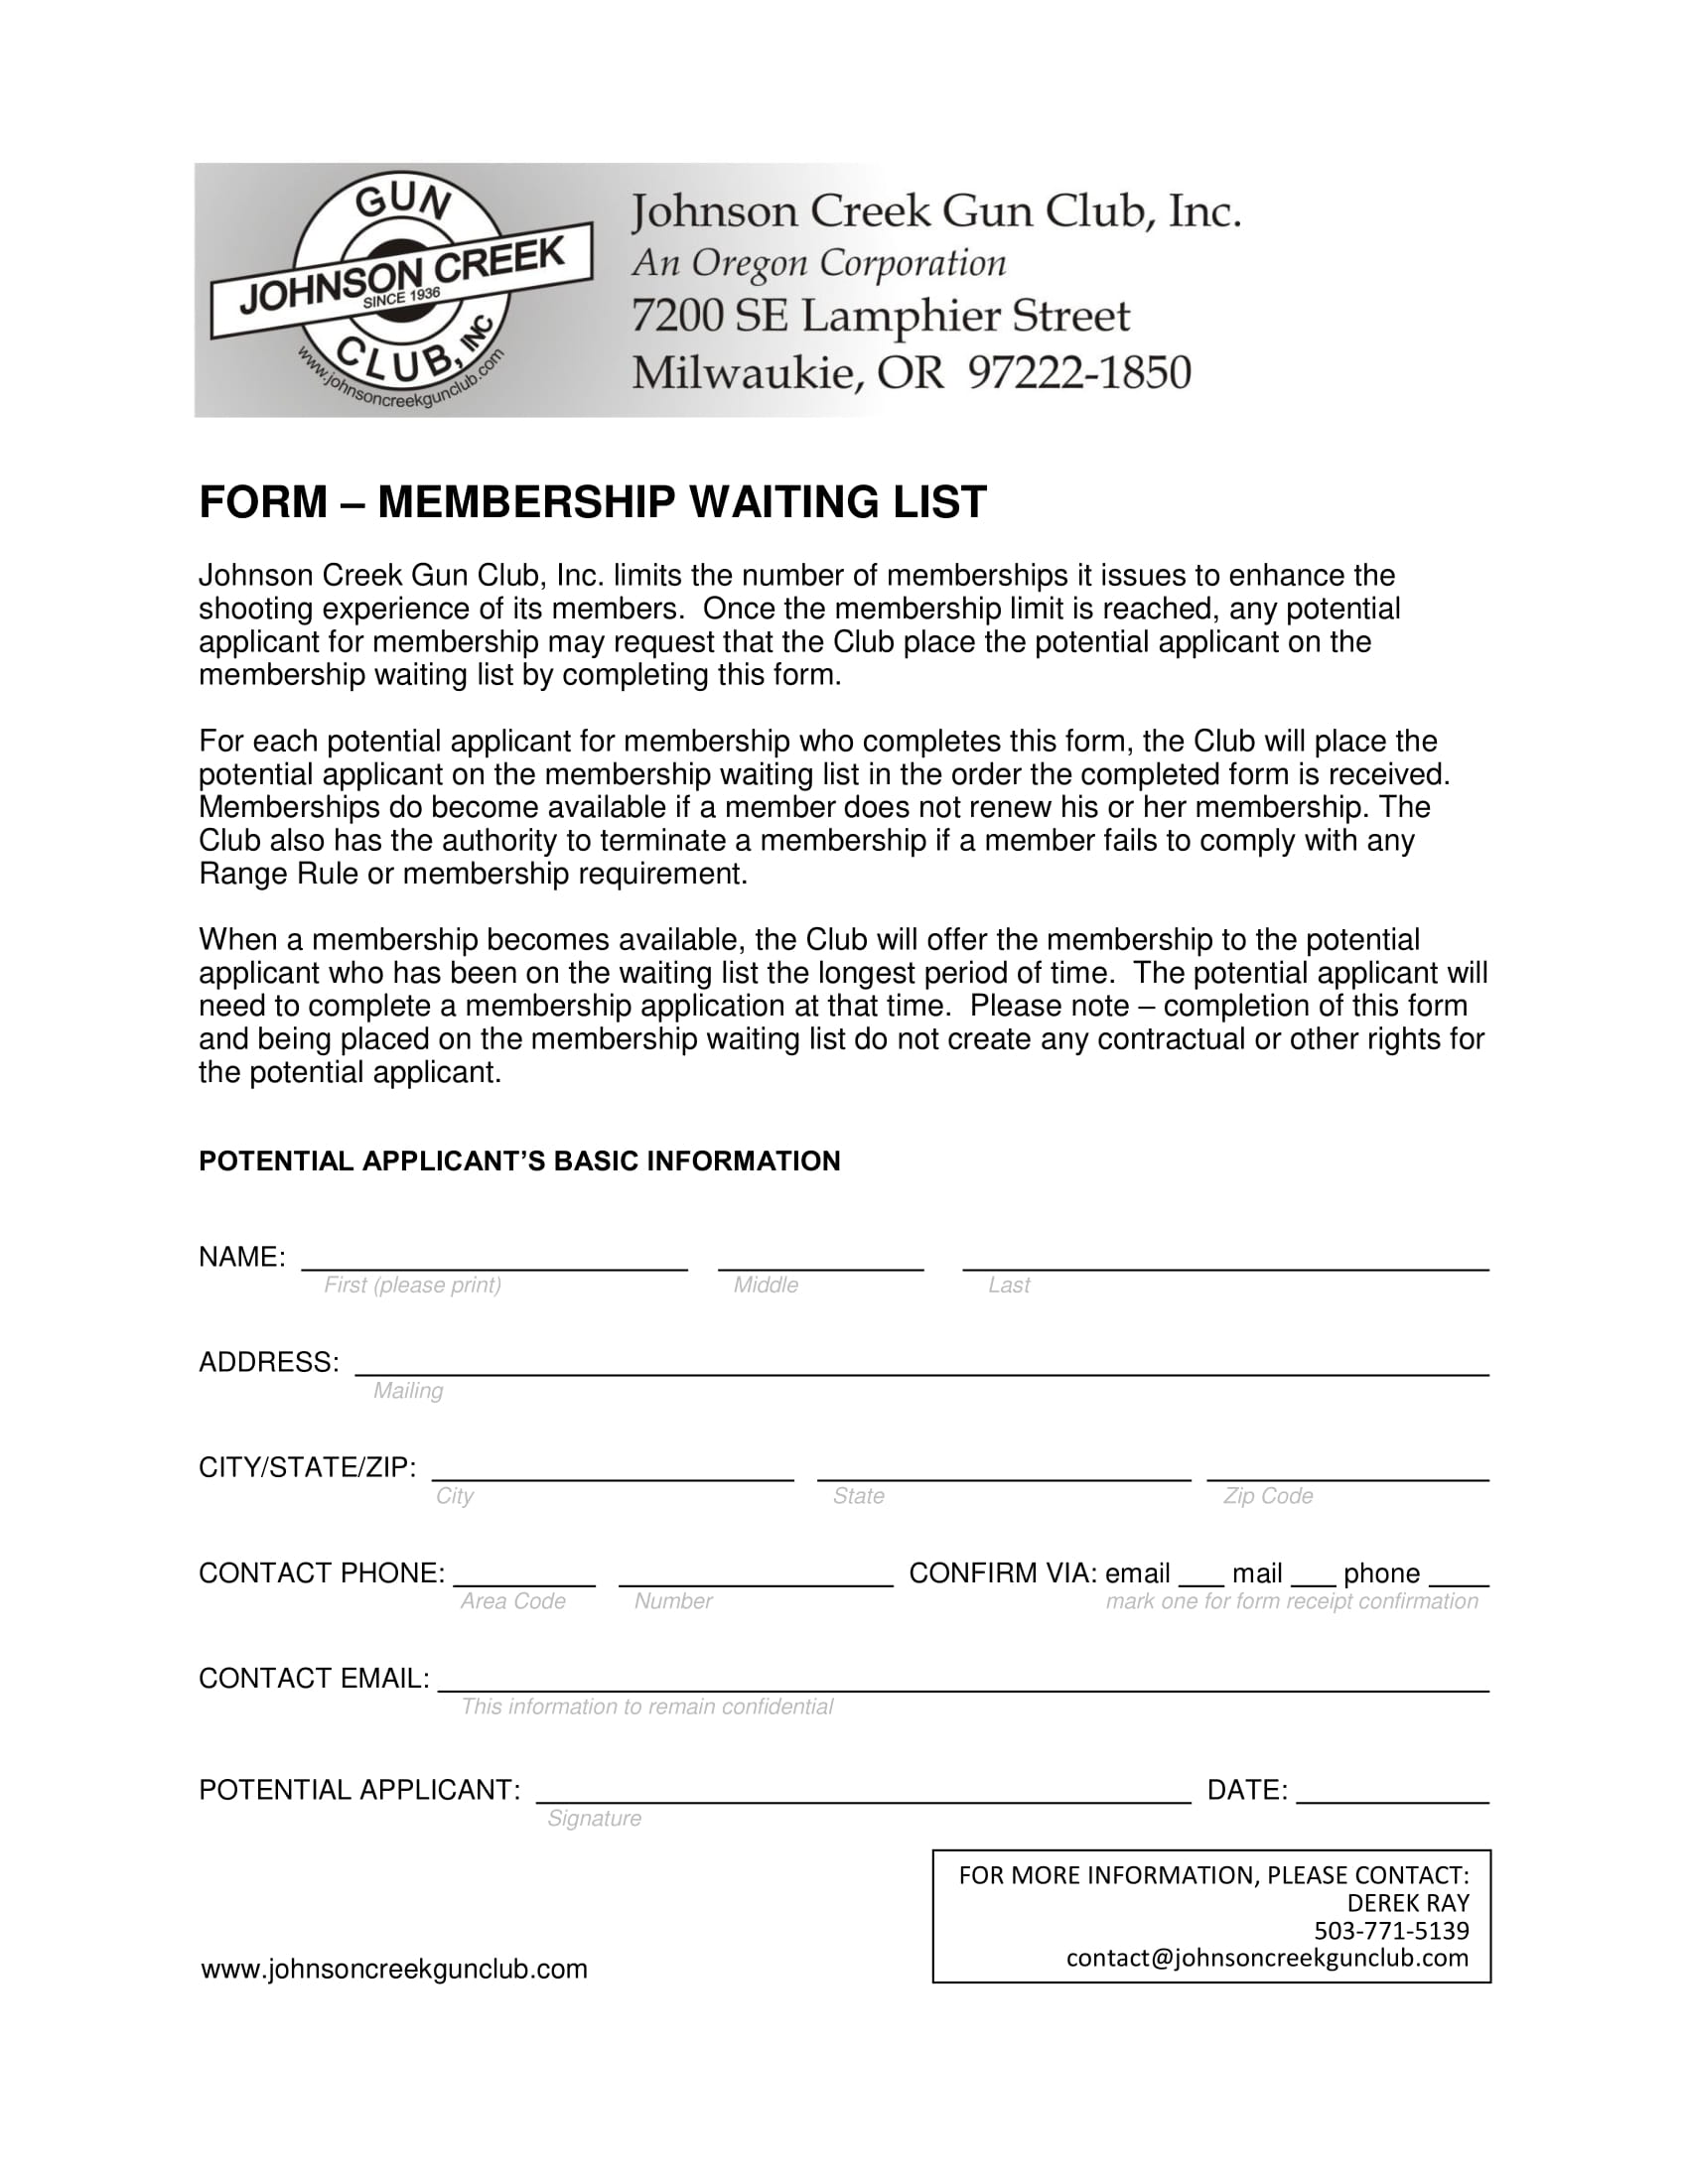 membership waiting list form 1